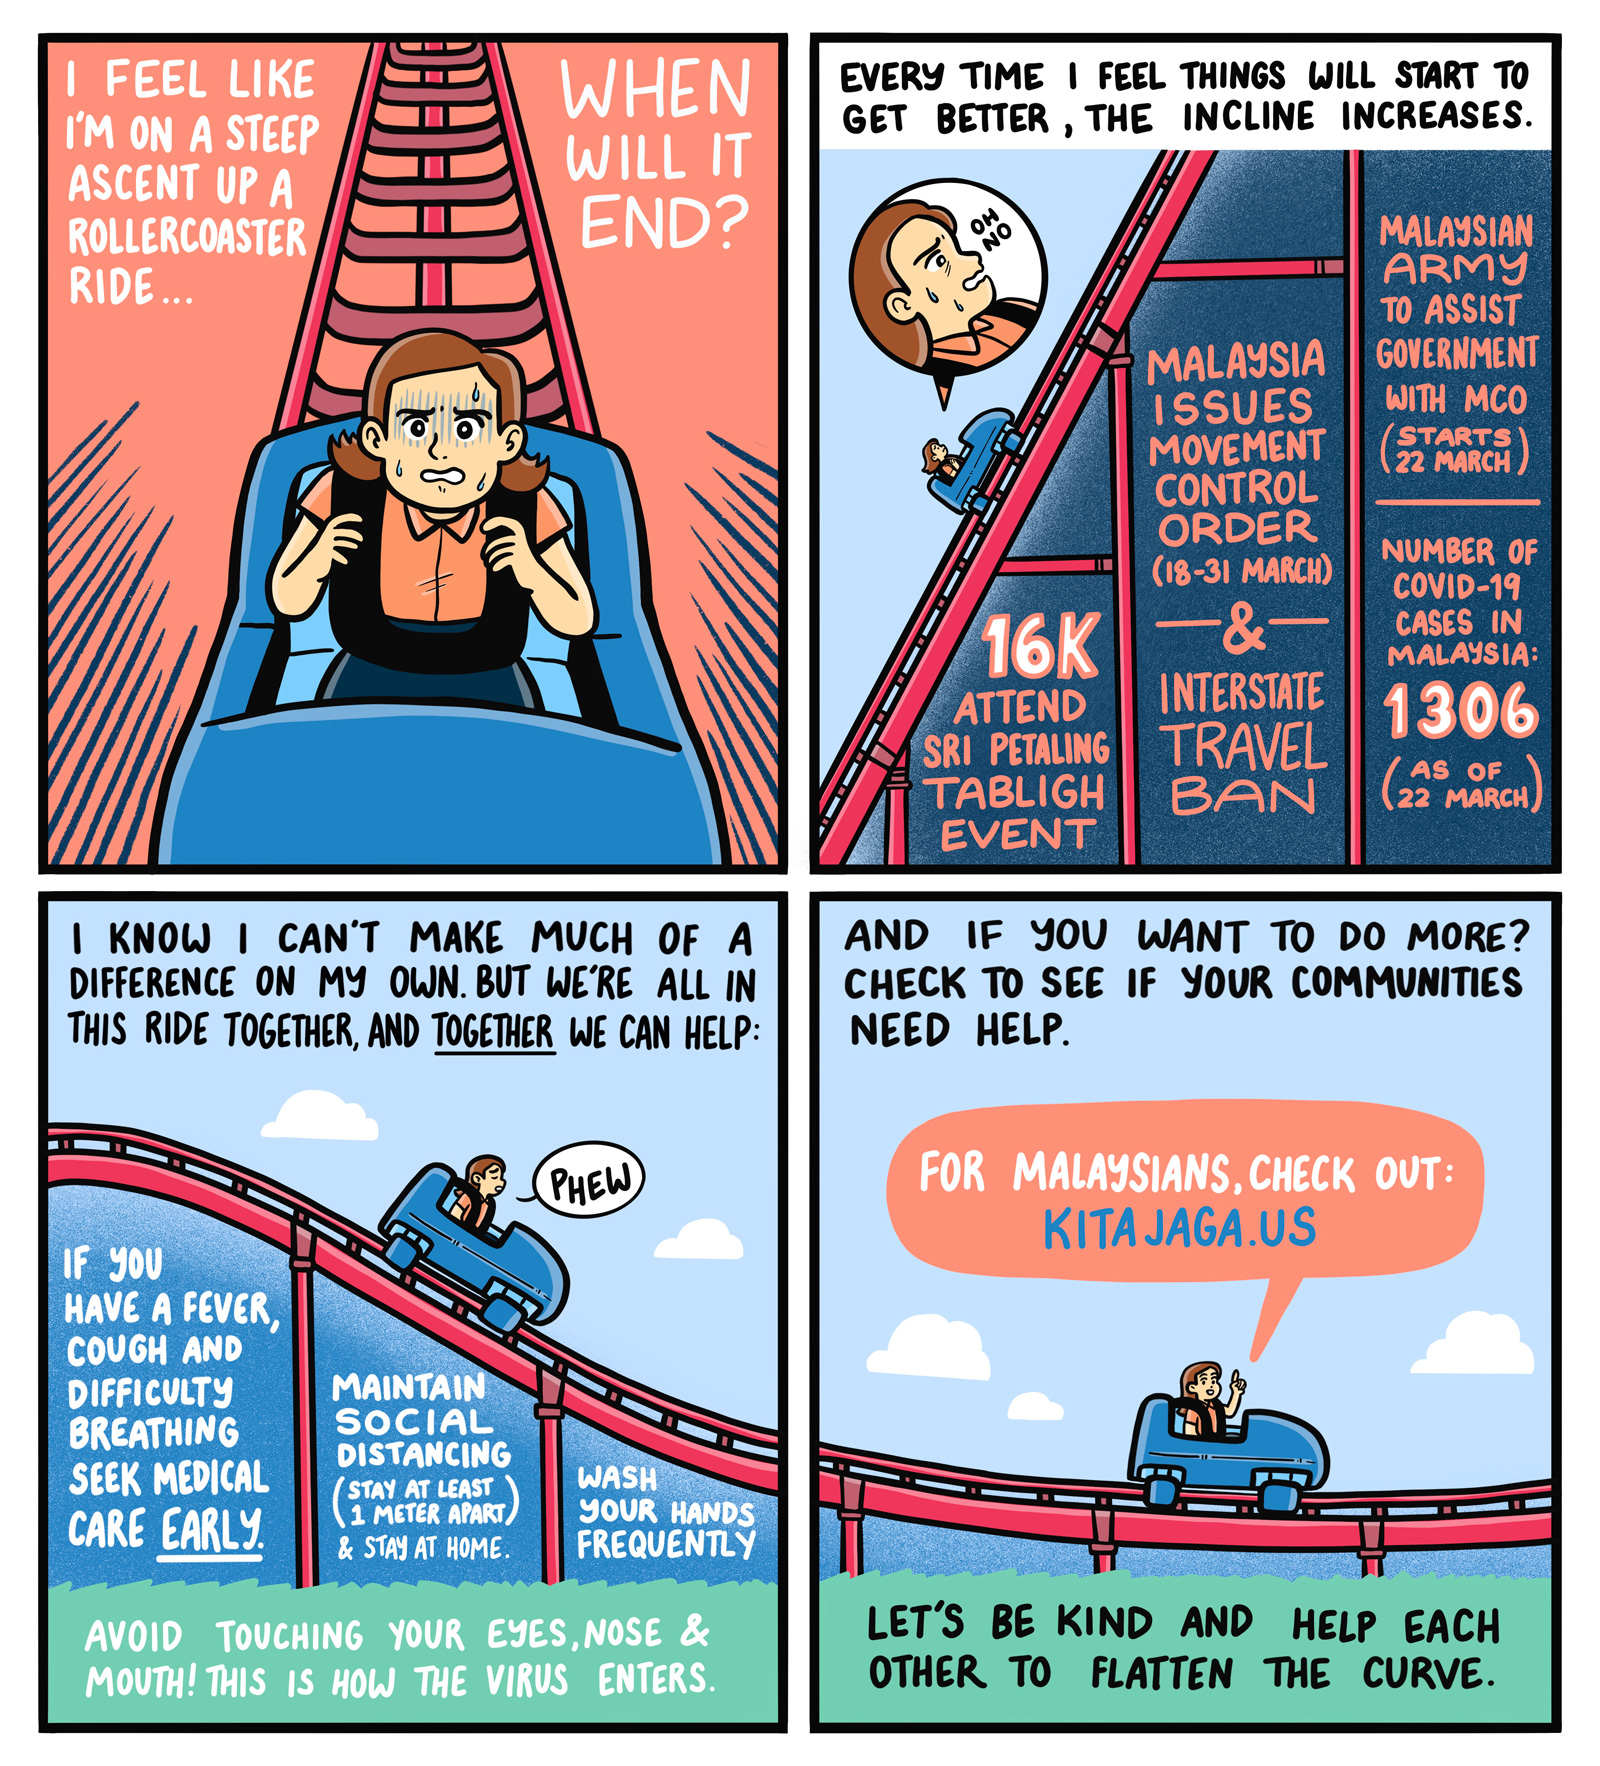 A comic about how society can help to flatten the curve of COVID-19 cases.